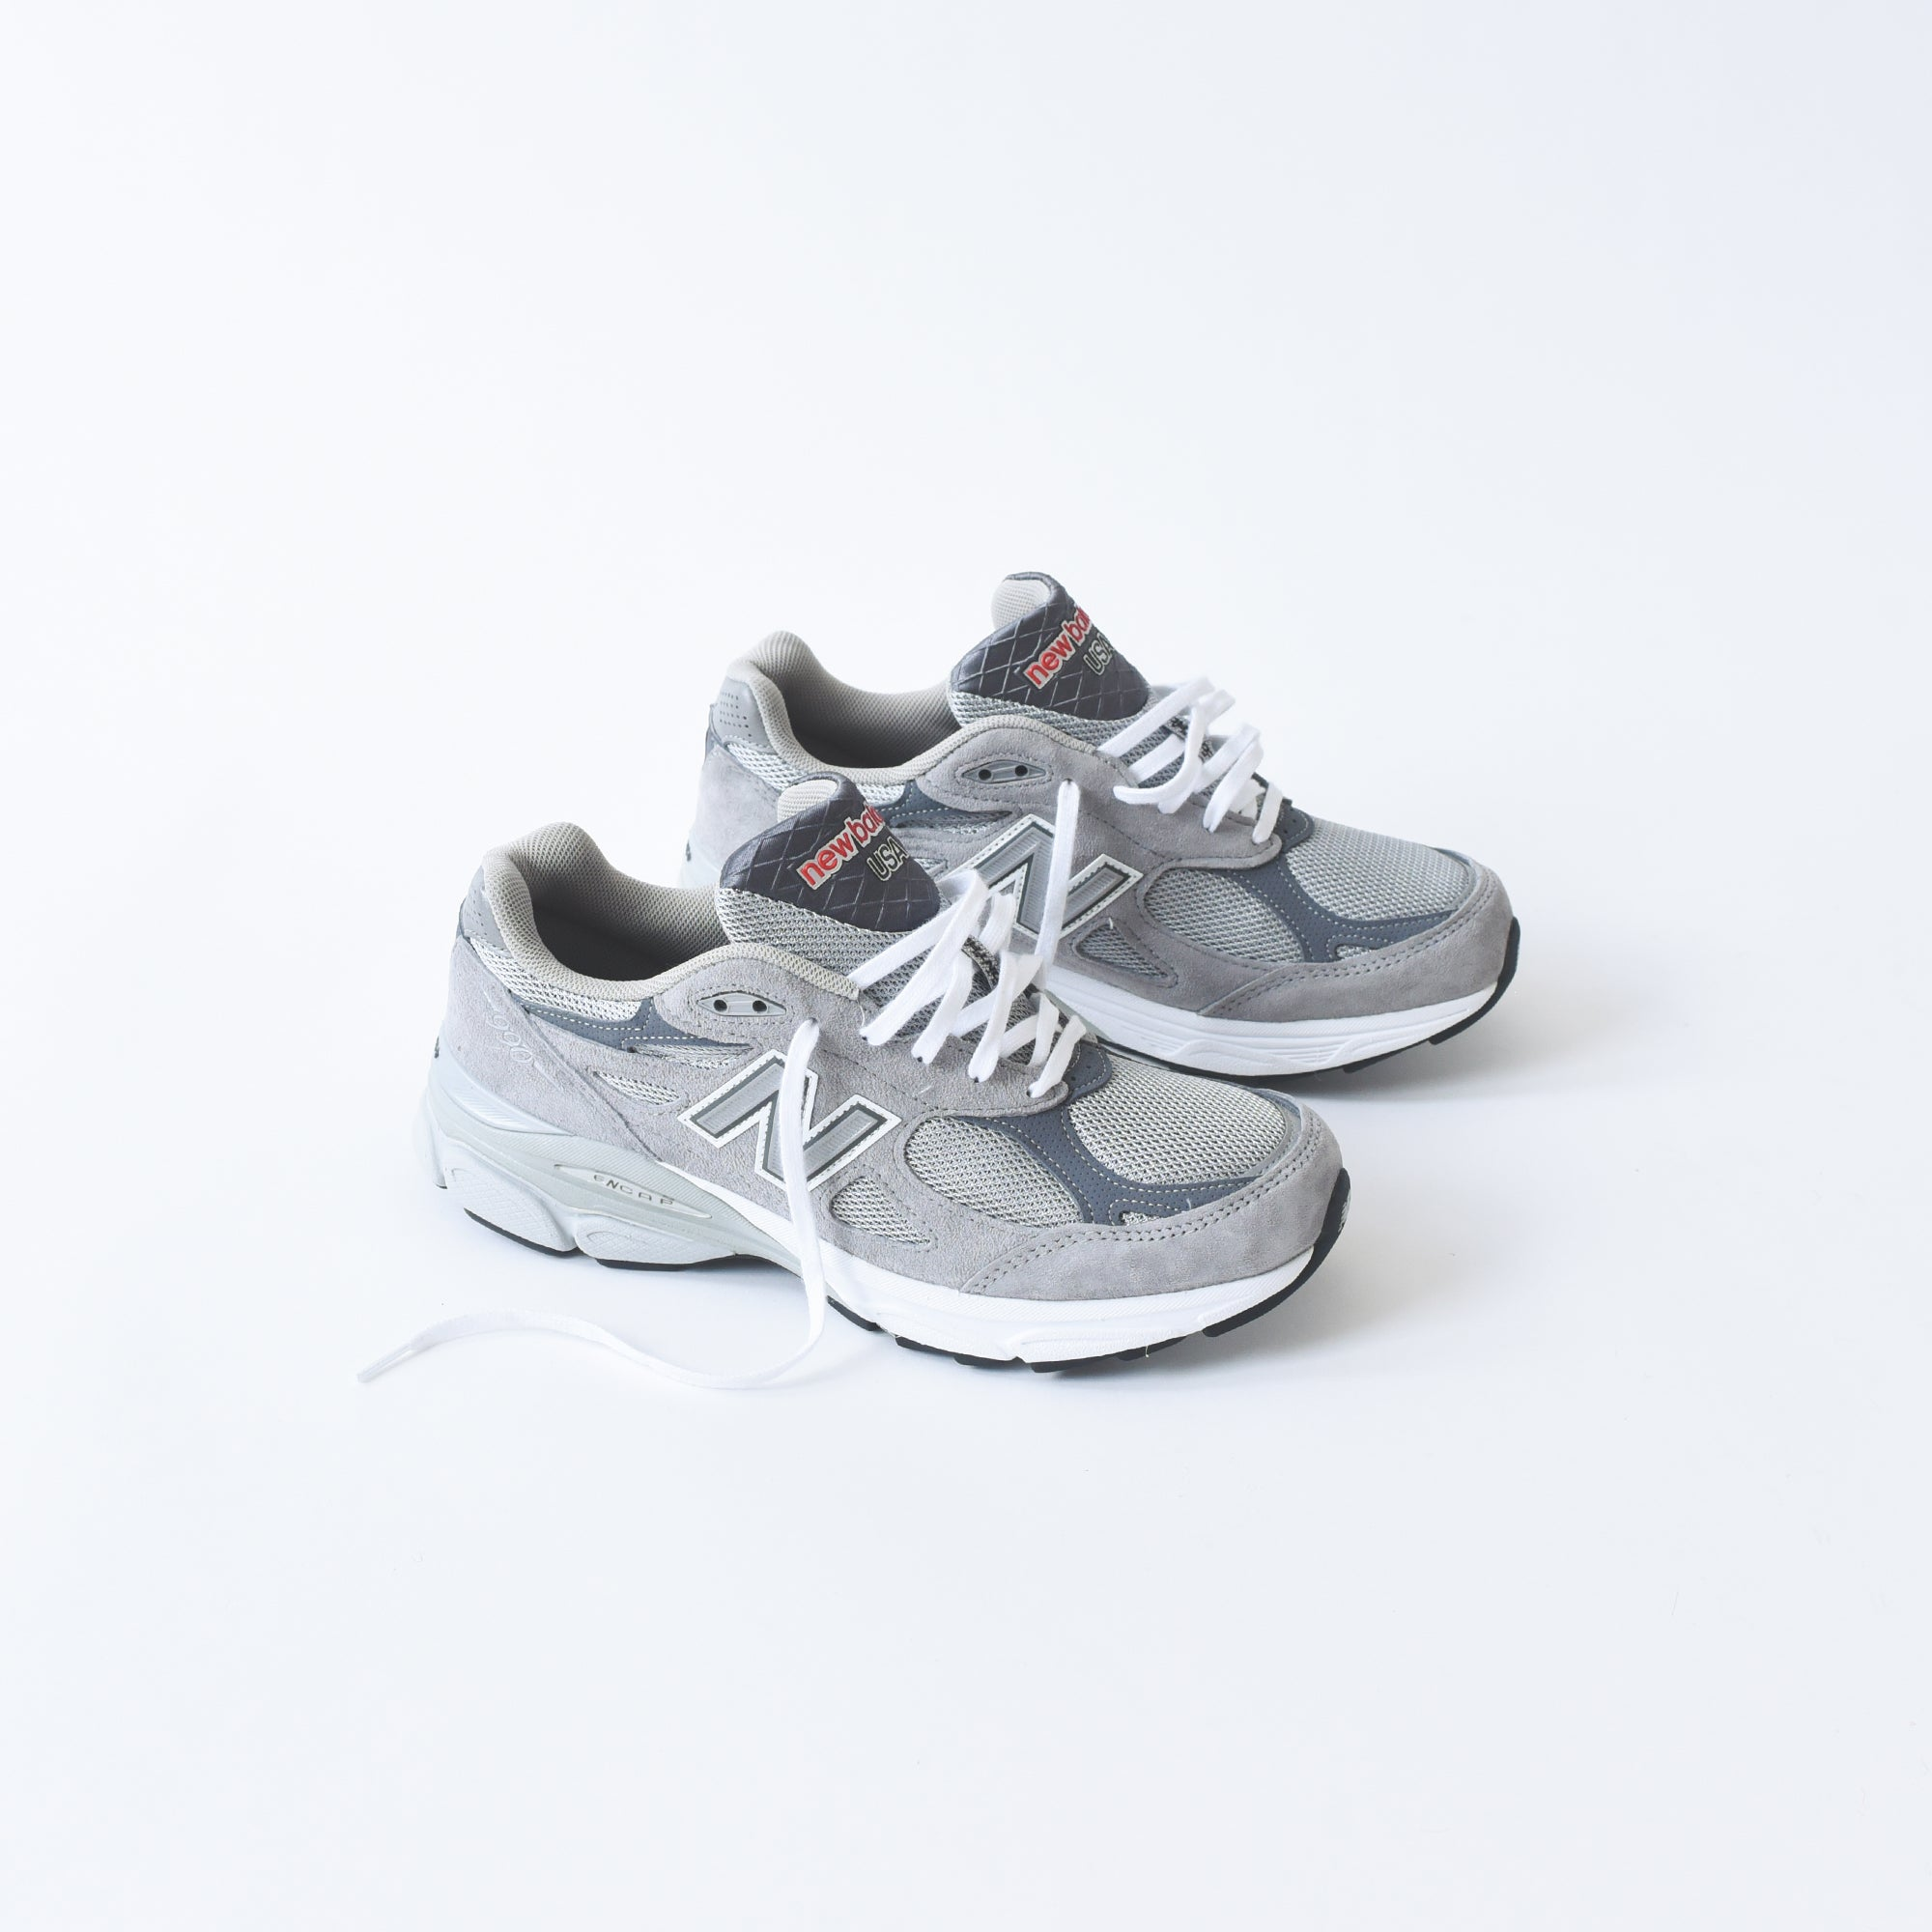 authorized site for whole family sale spain lacing new balance 990 db0f4 38caf